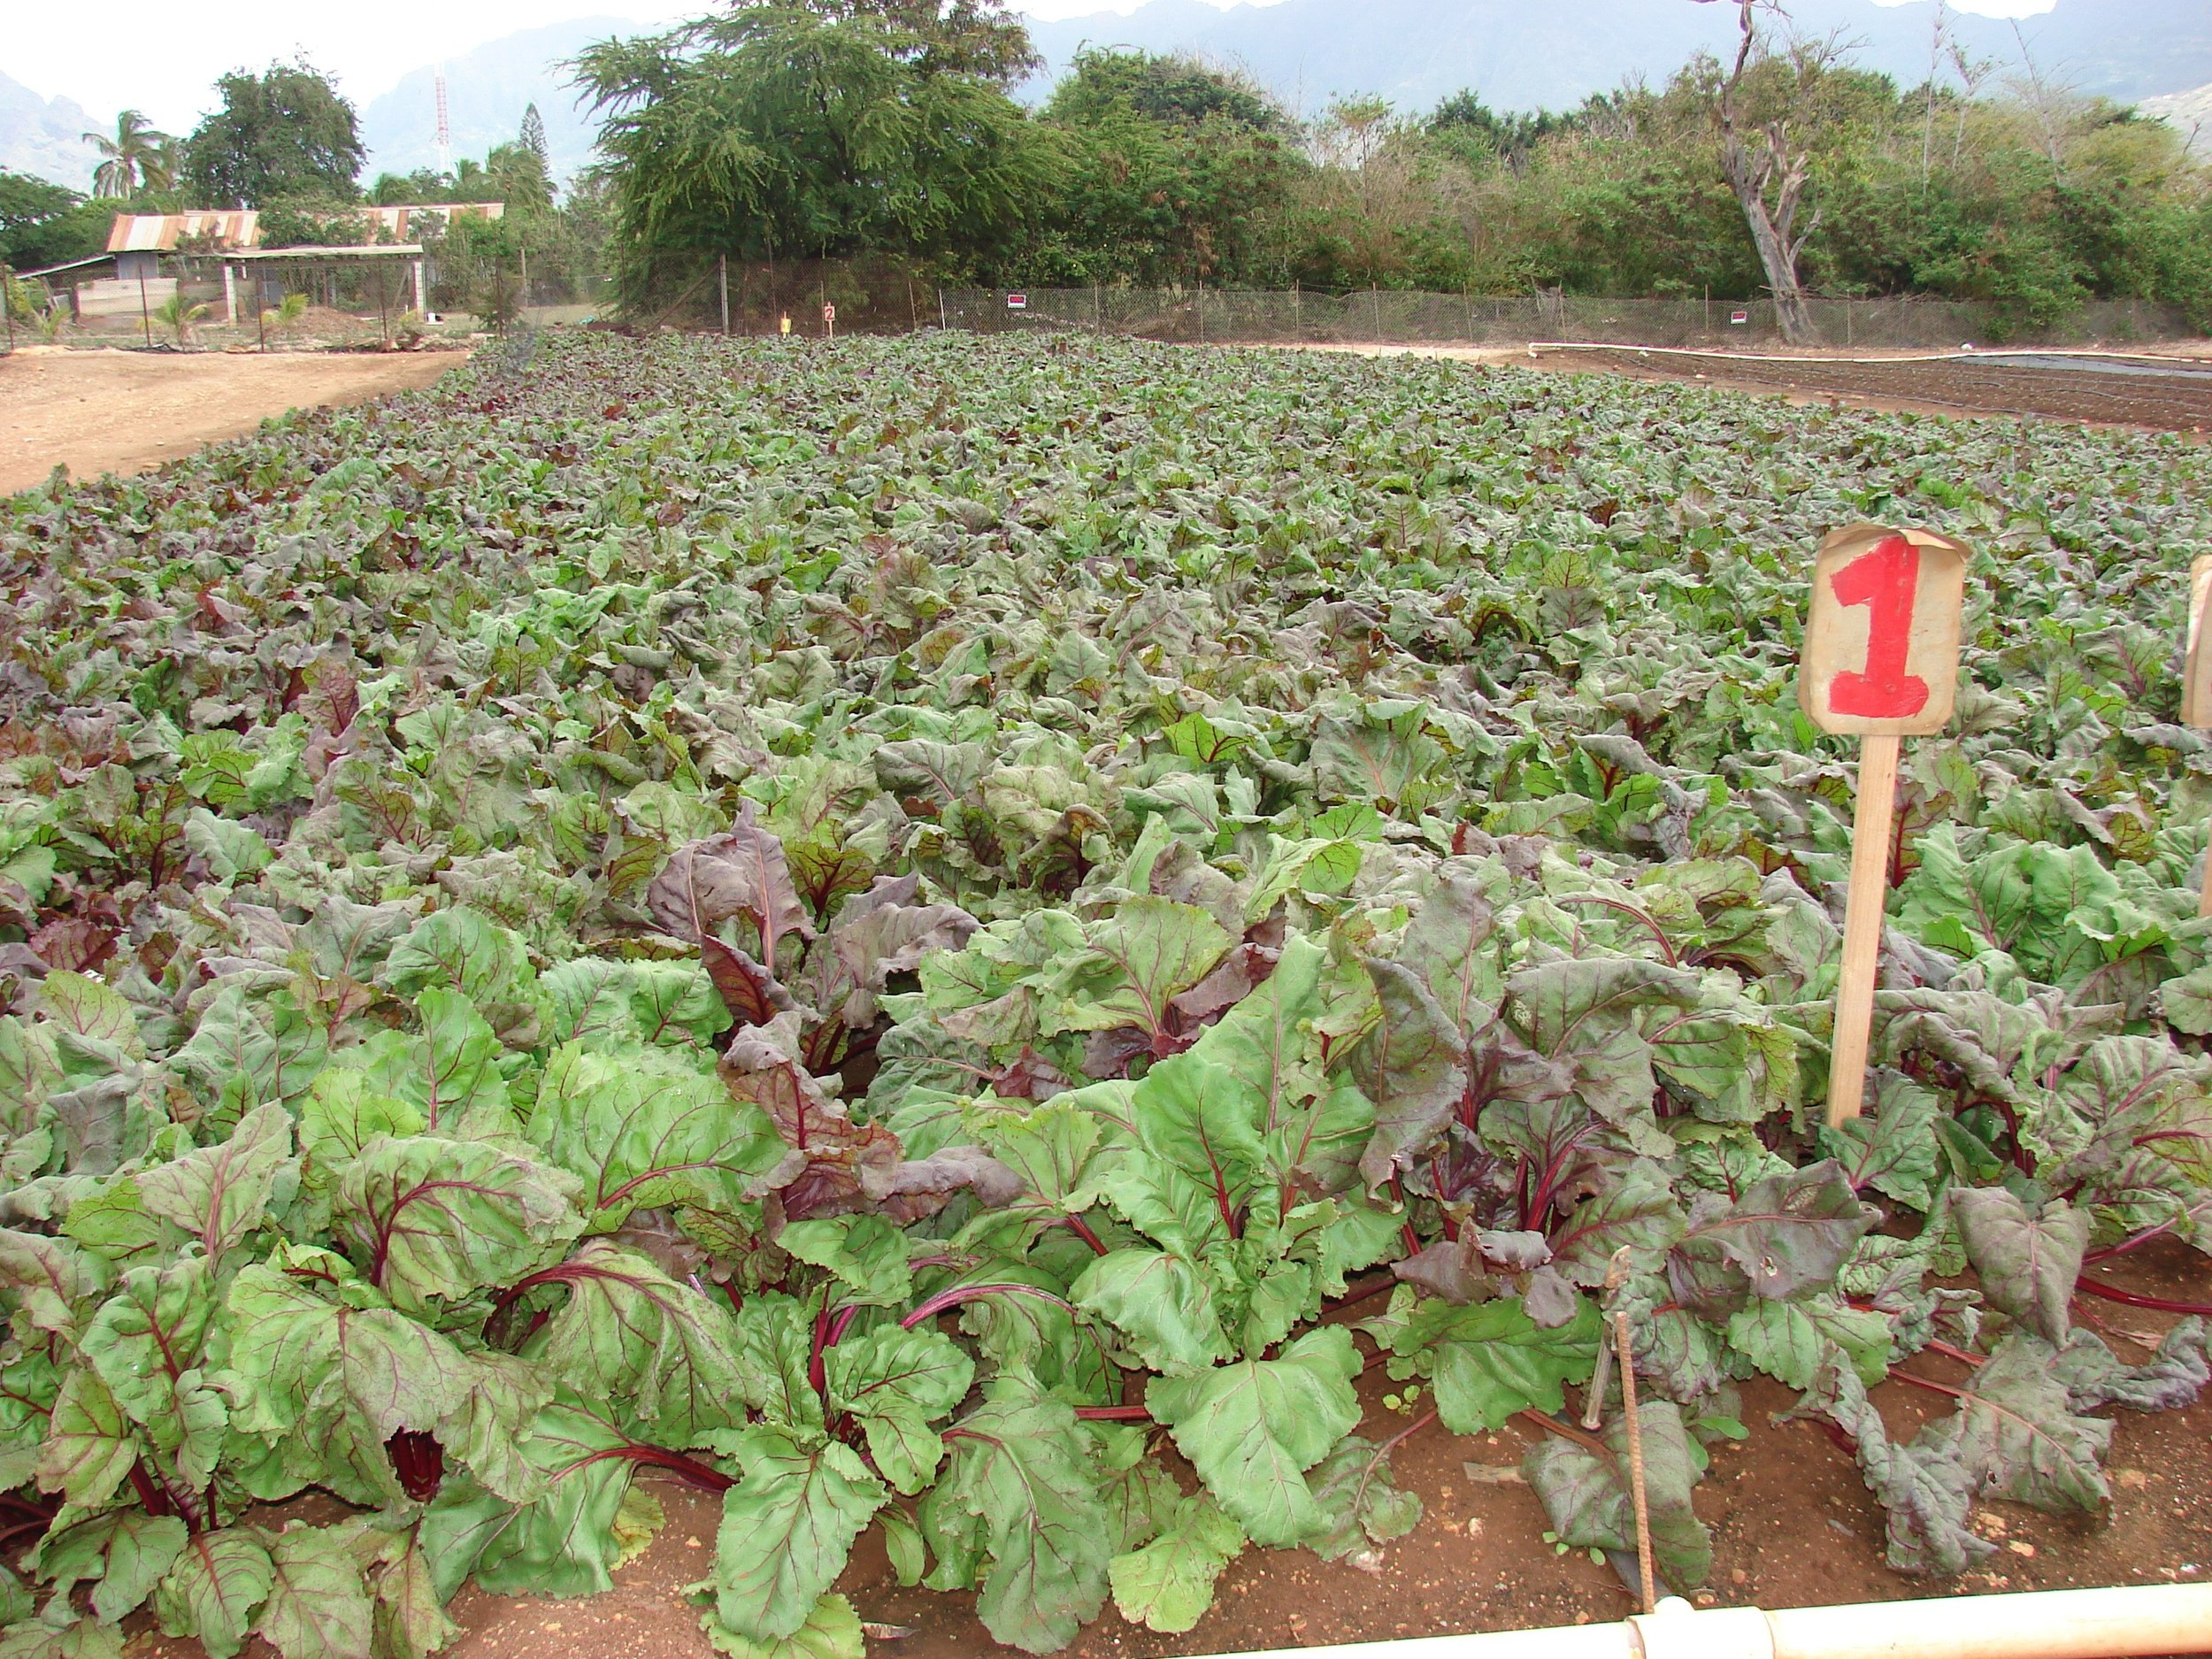 Here are just a few examples that we wanted to share. This is a field of Beets that will be ready to harvest soon.